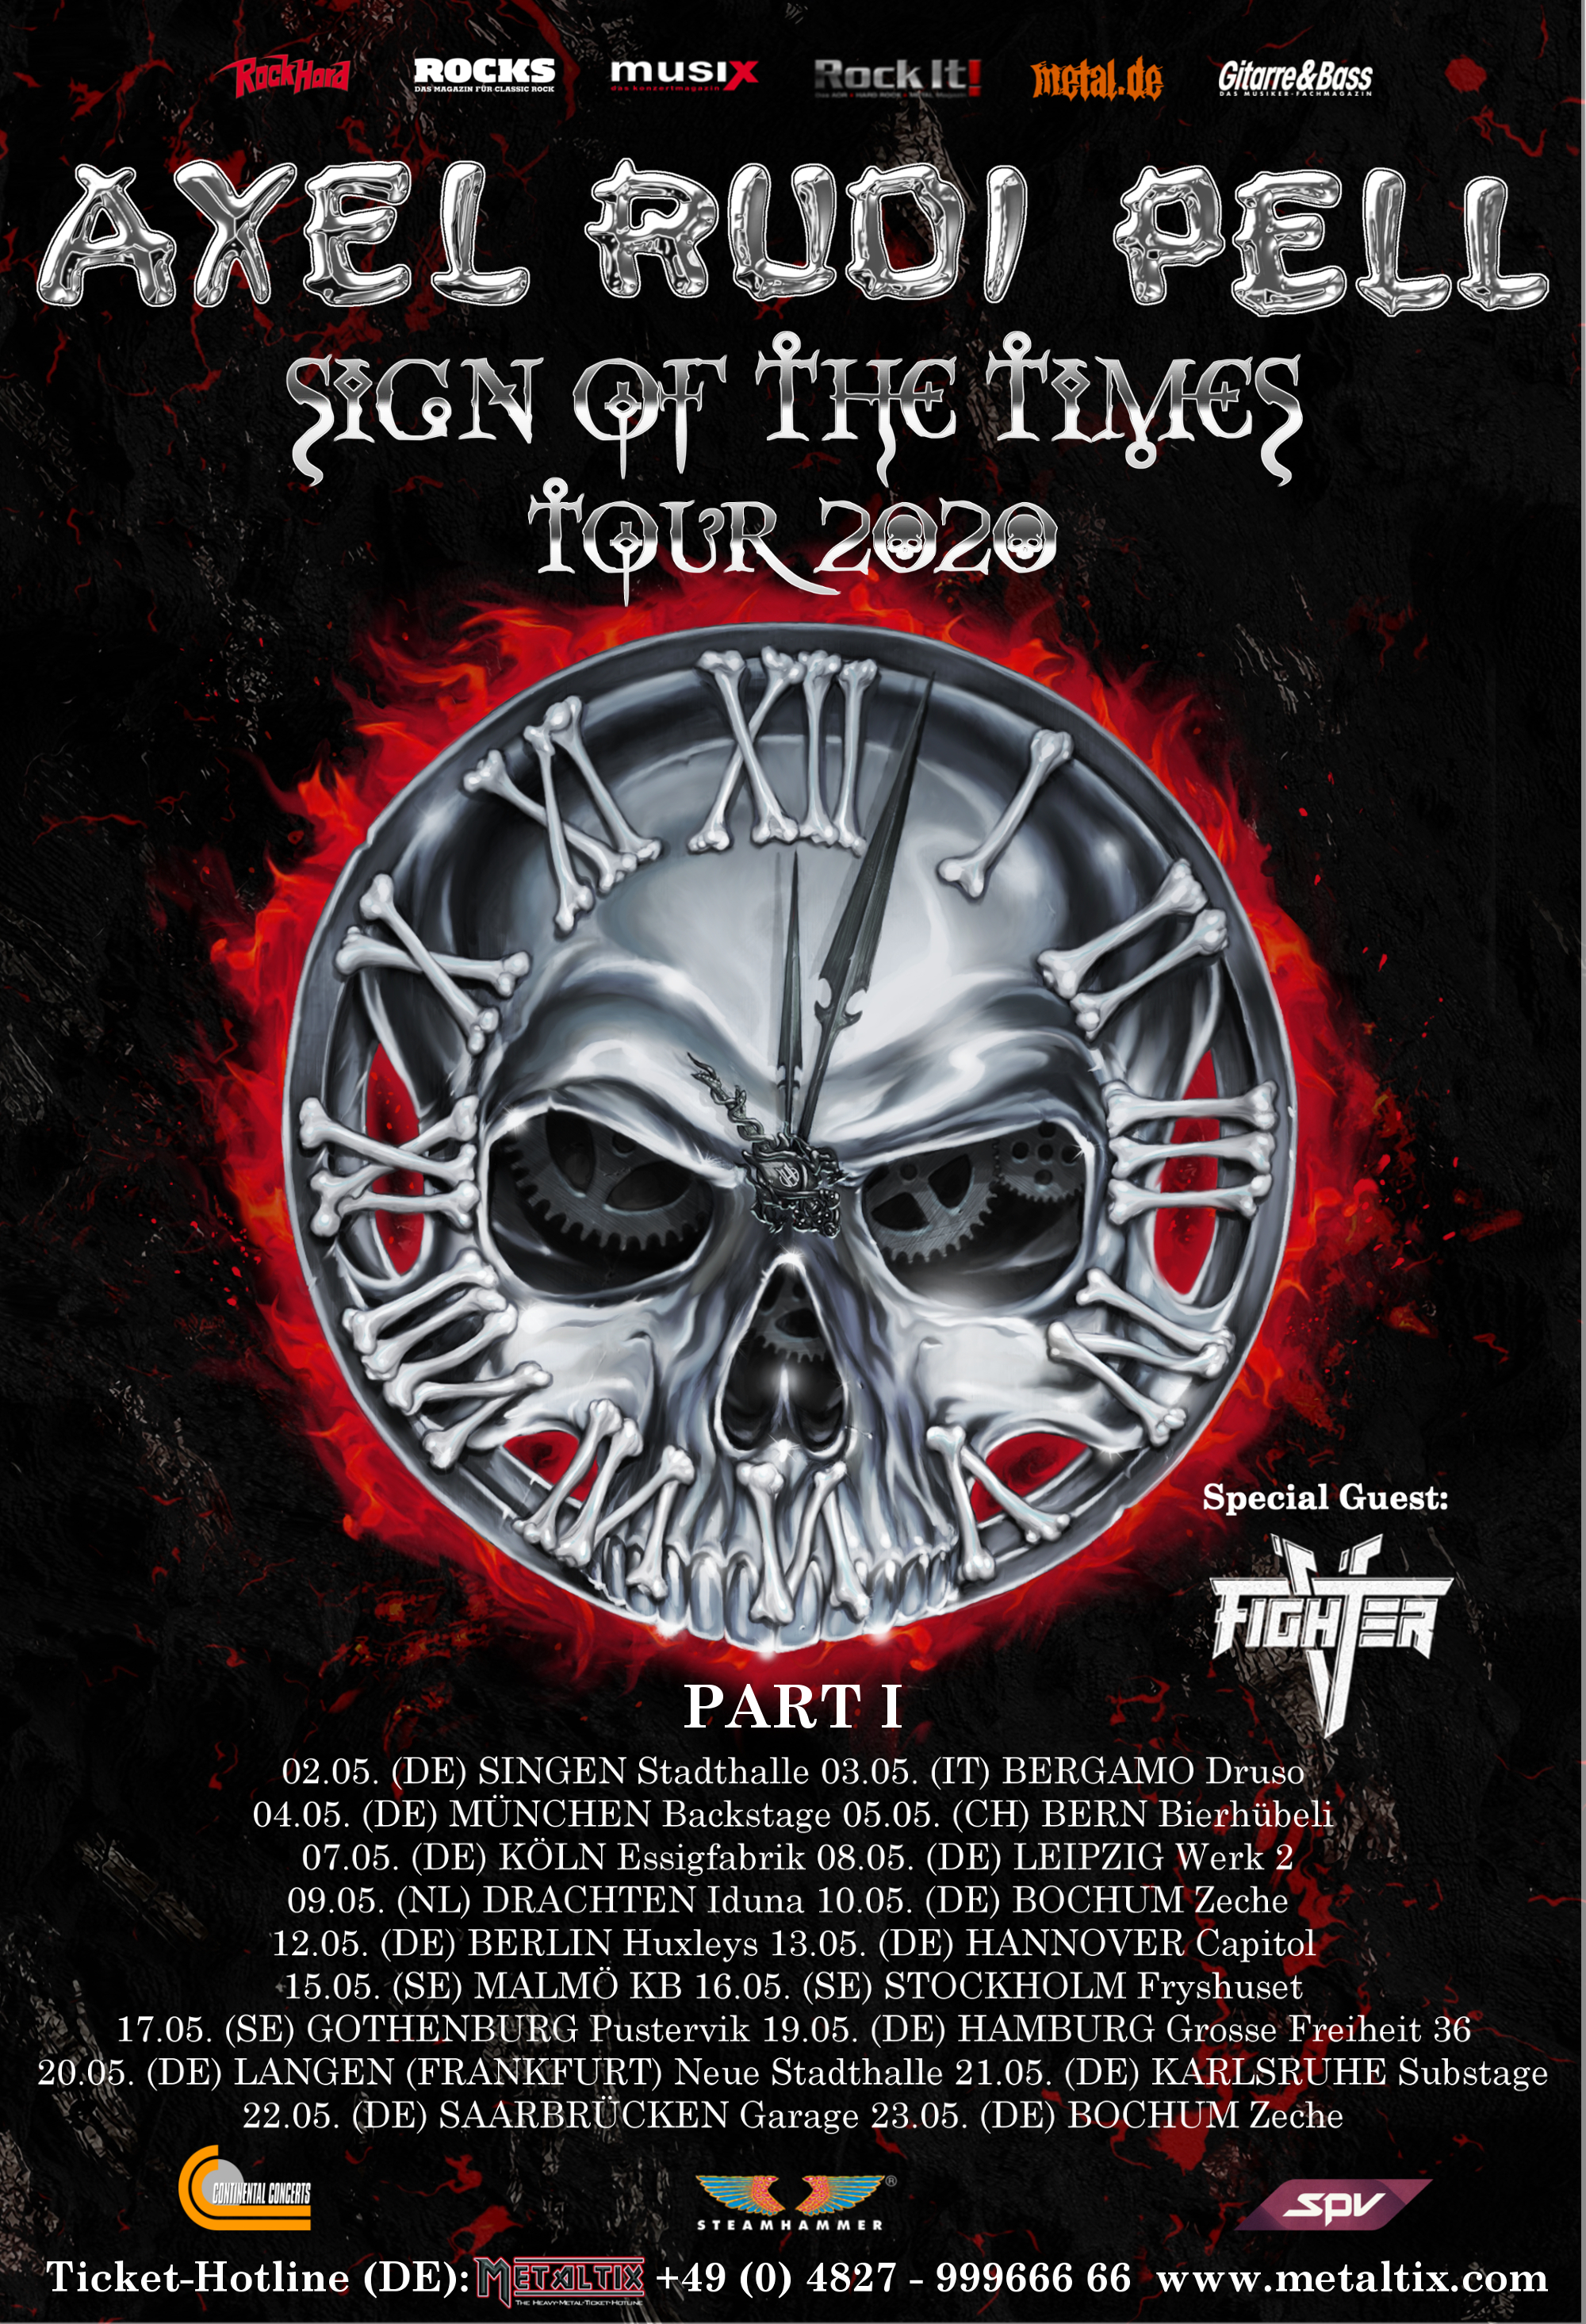 Axel Rudi Pell - Sign Of The Times Tour 2020